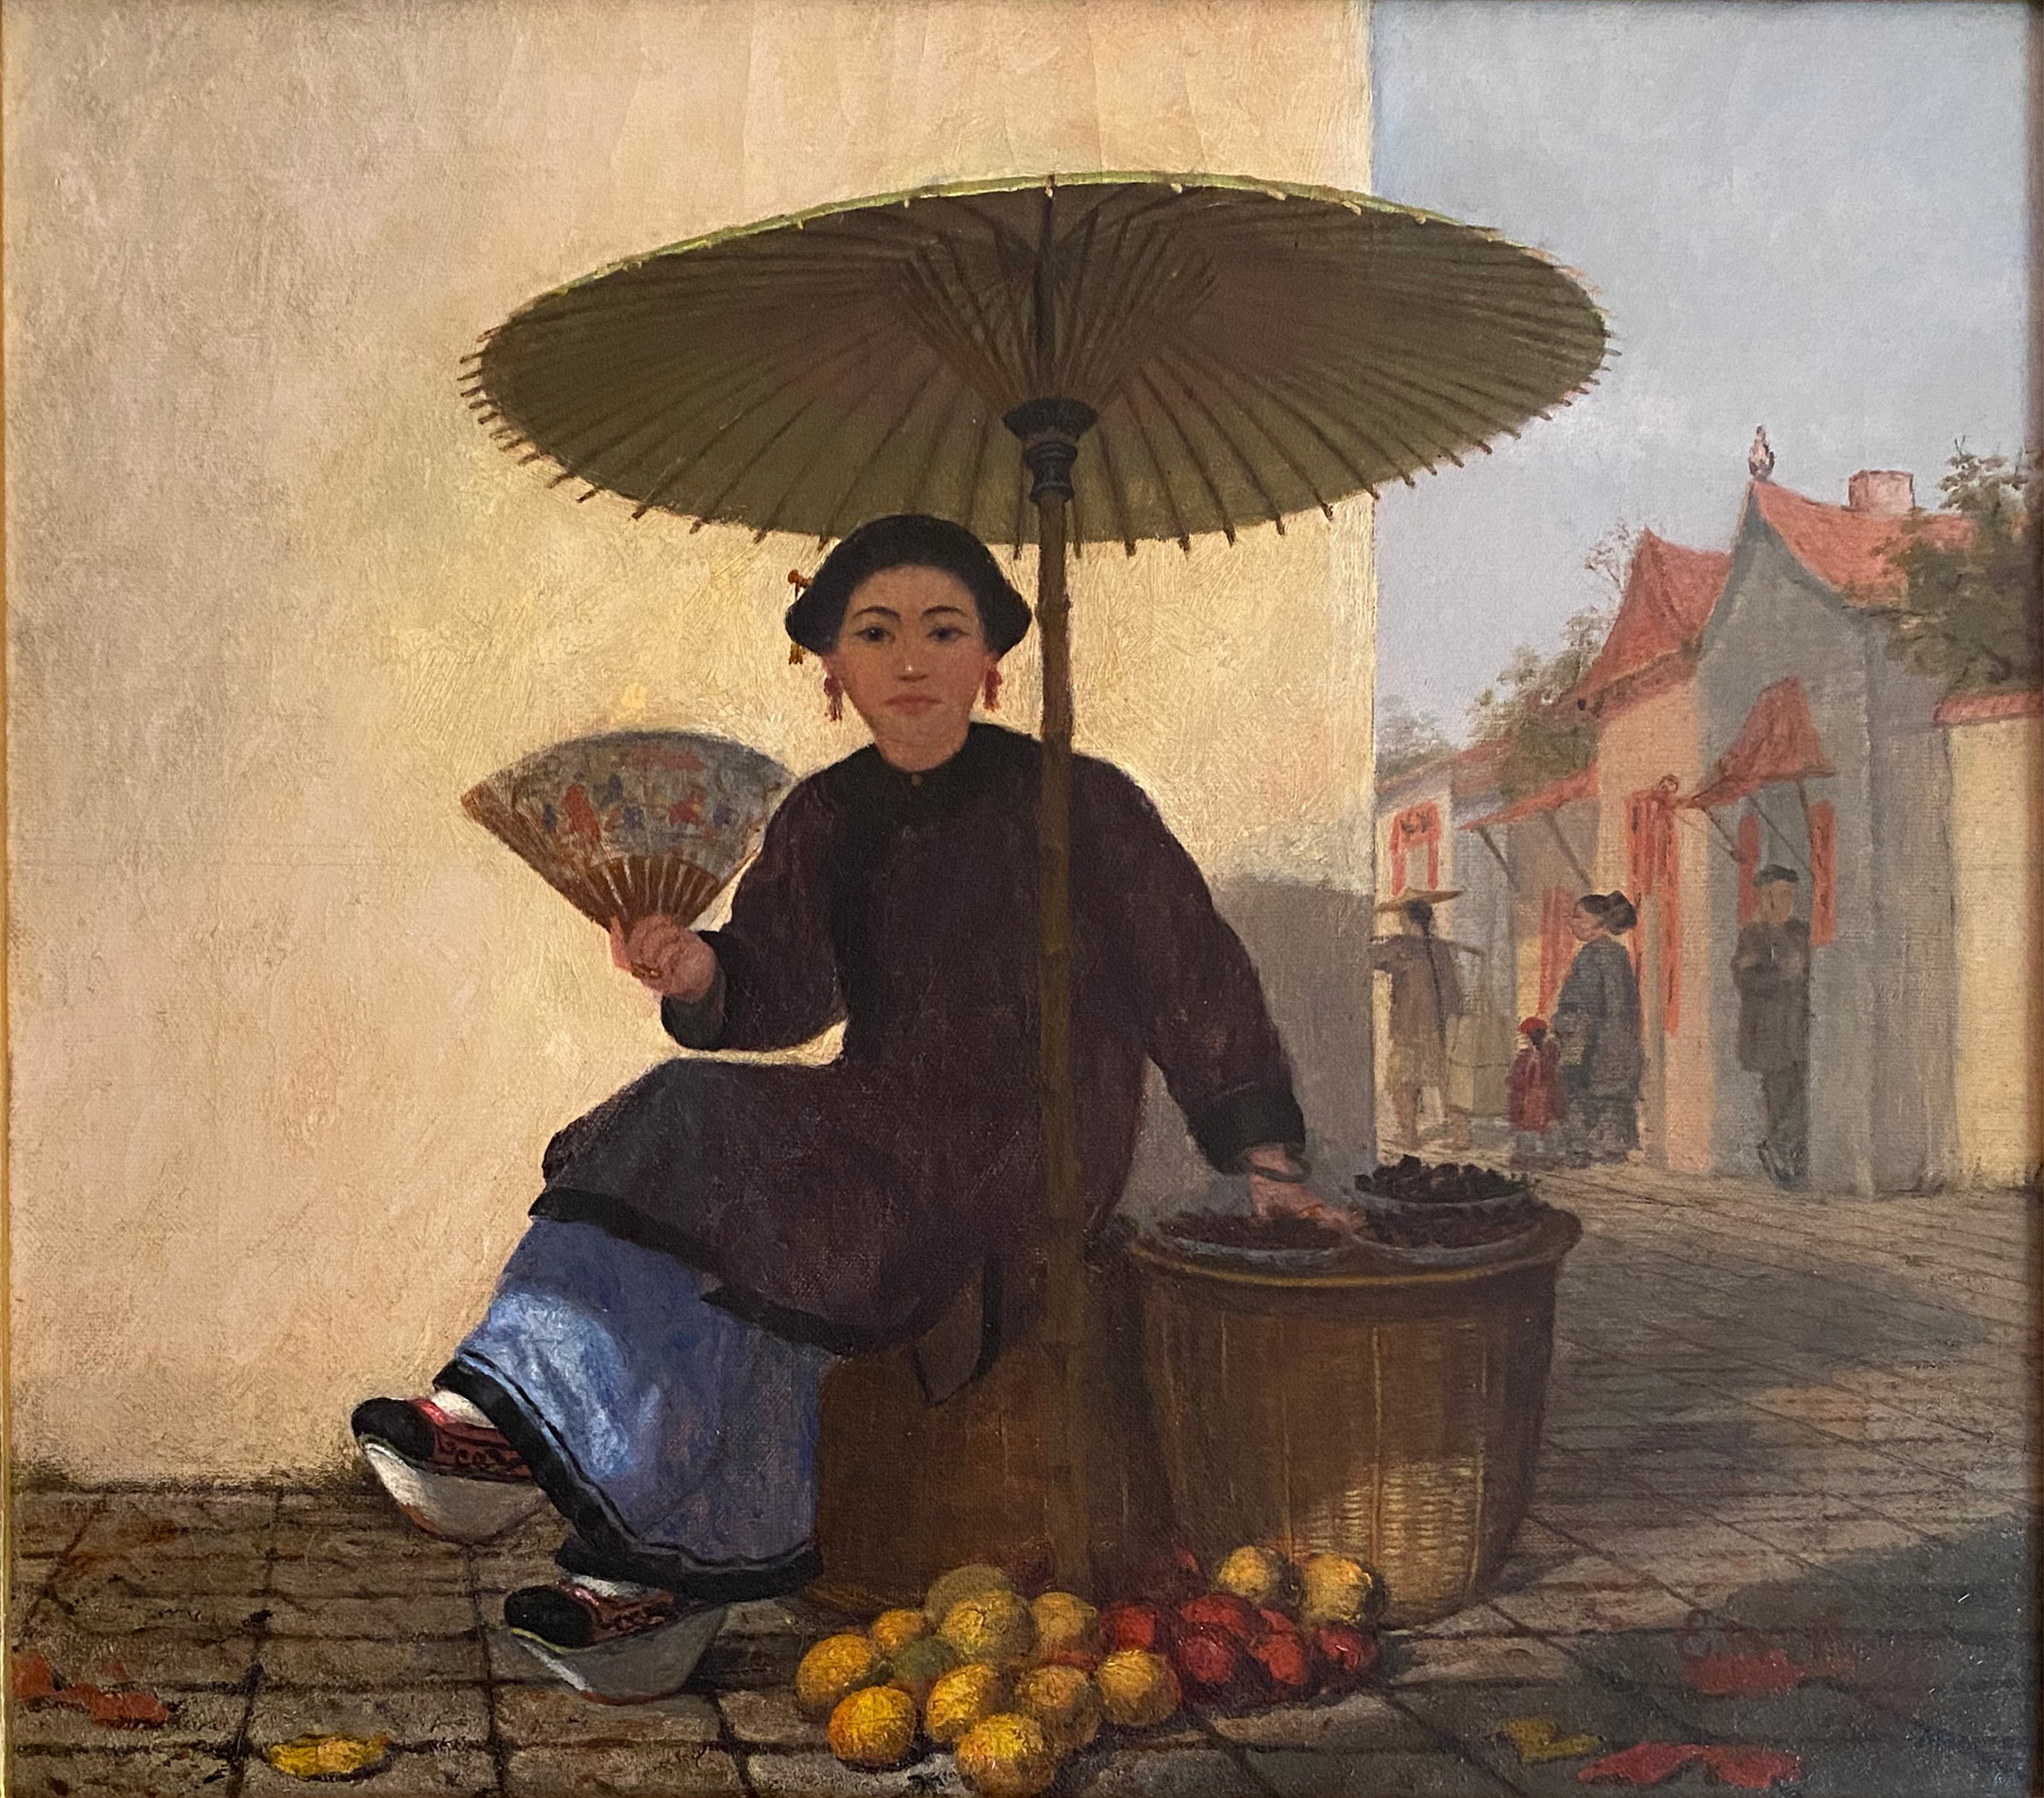 Enoch Wood Perry, Chinese Fruit Seller, c. 1865